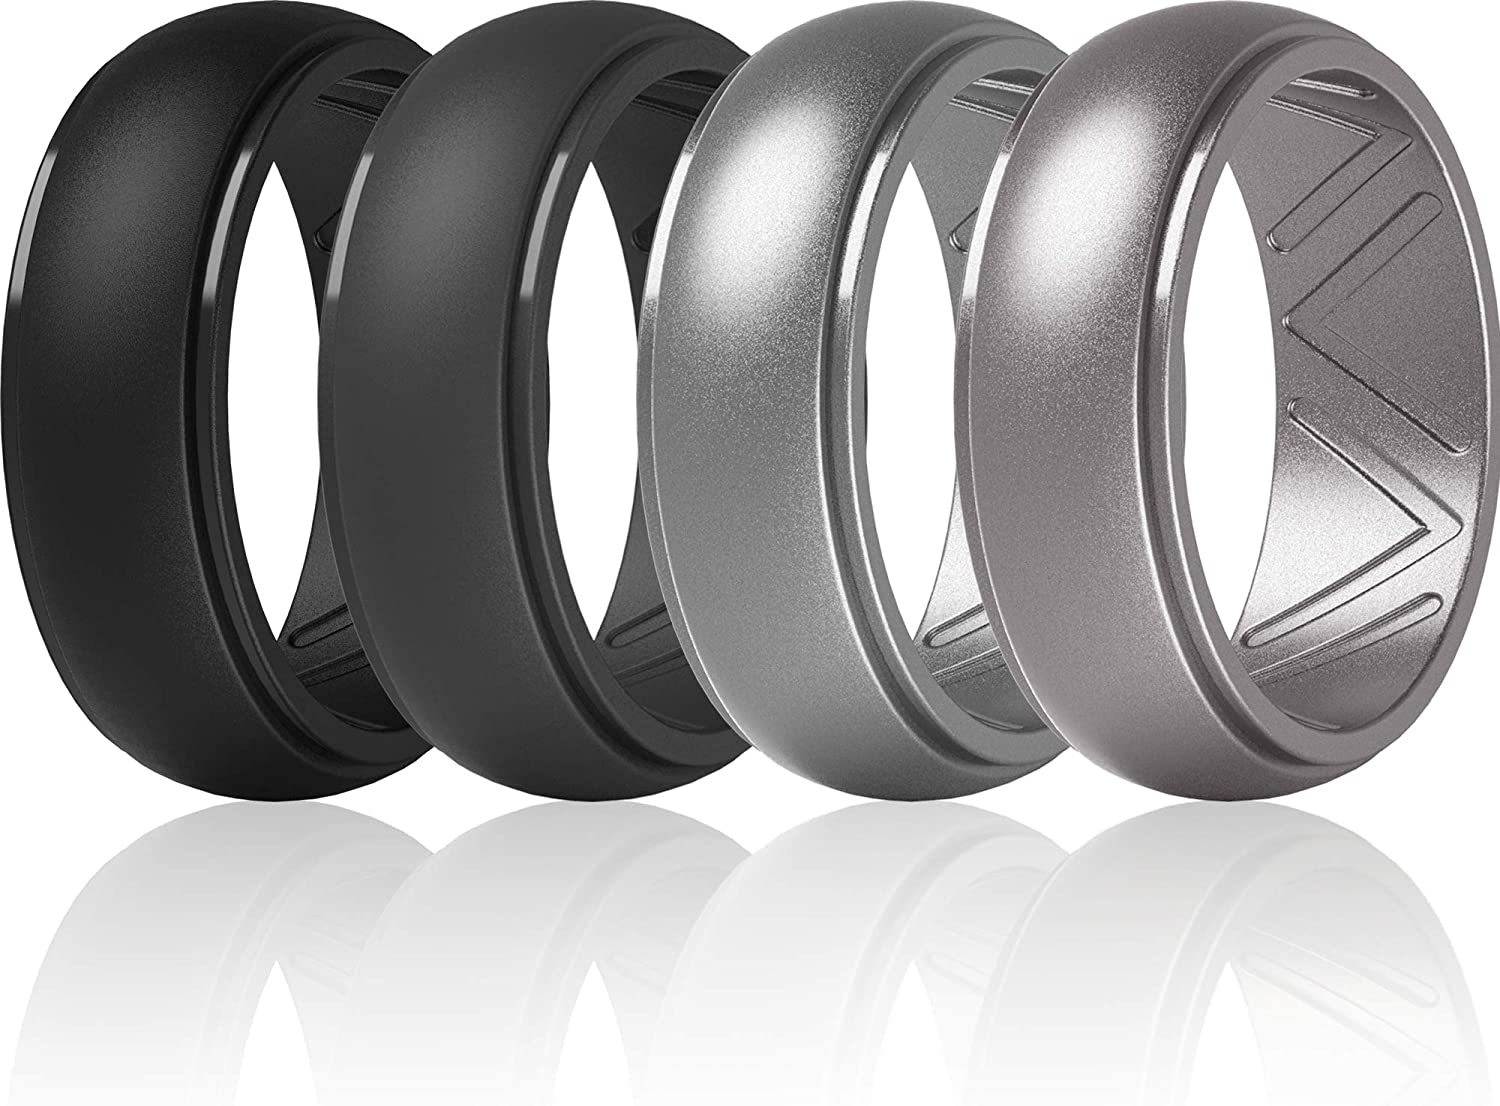 Step Edge Airflow Inner Grooves 2.5mm Thick ThunderFit Silicone Wedding Rings for Men 8.7mm Width